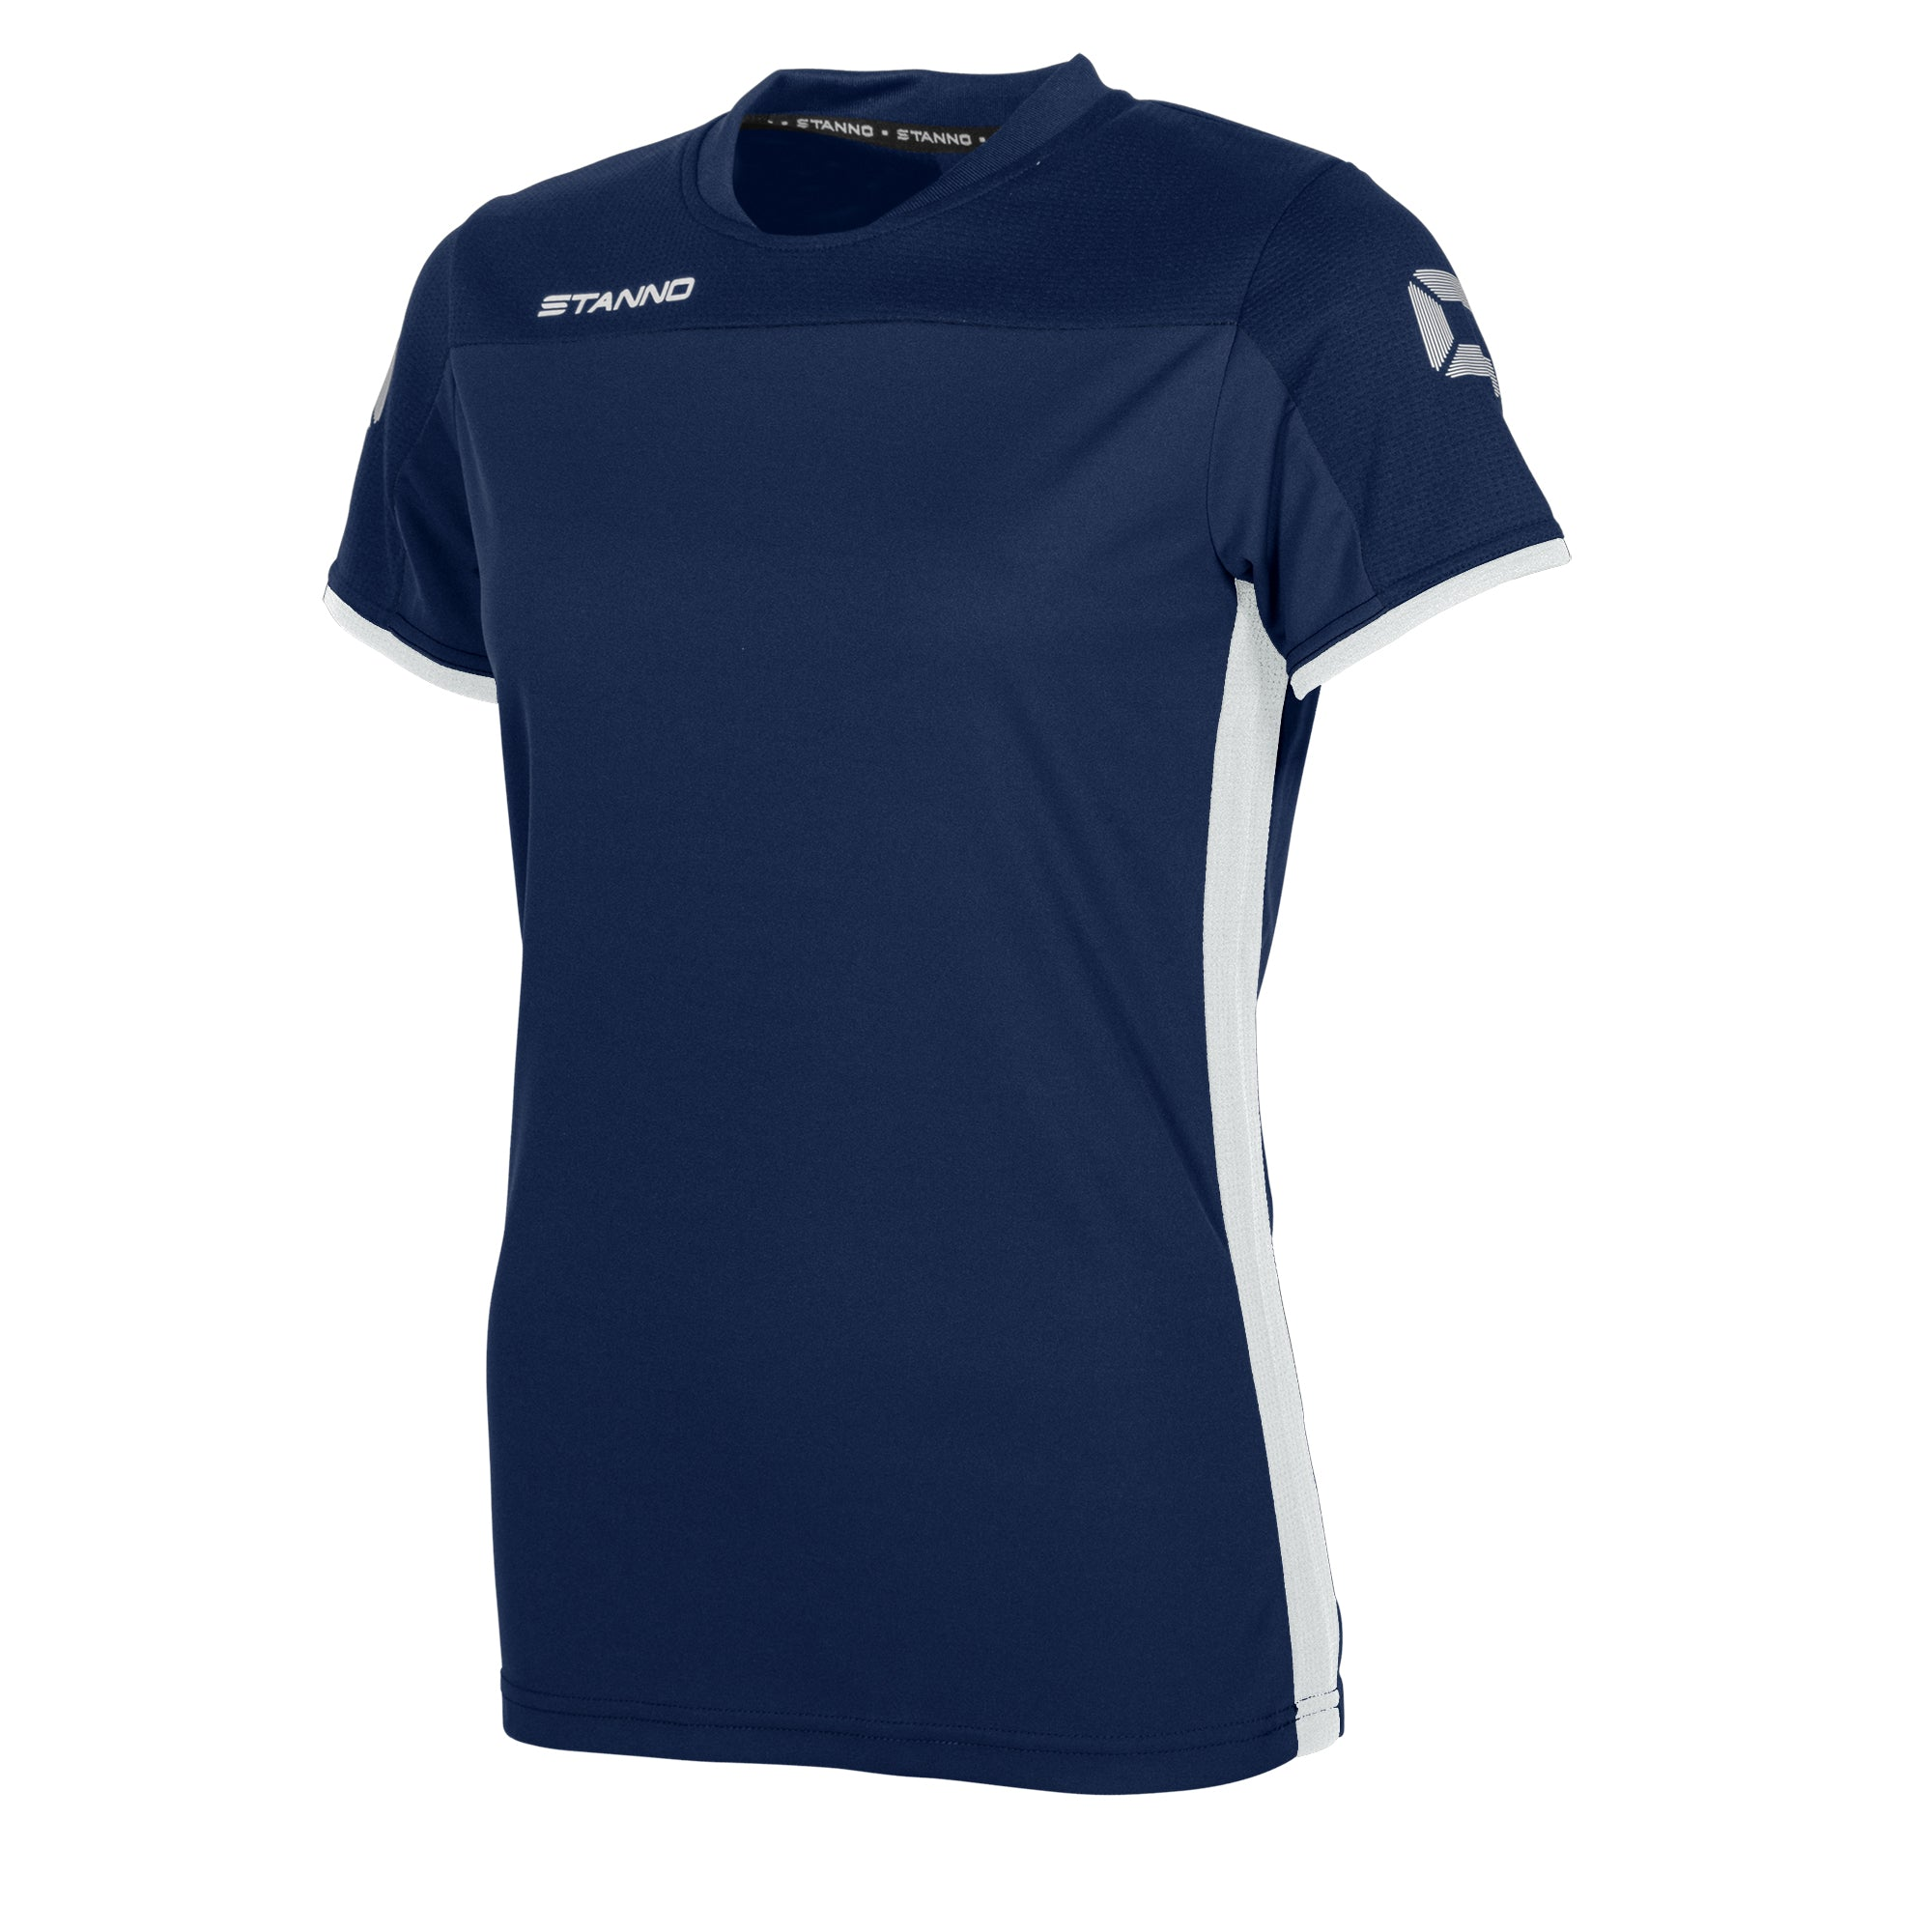 Stanno Pride ladies t-shirt in navy, with mesh shoulder and white side panel